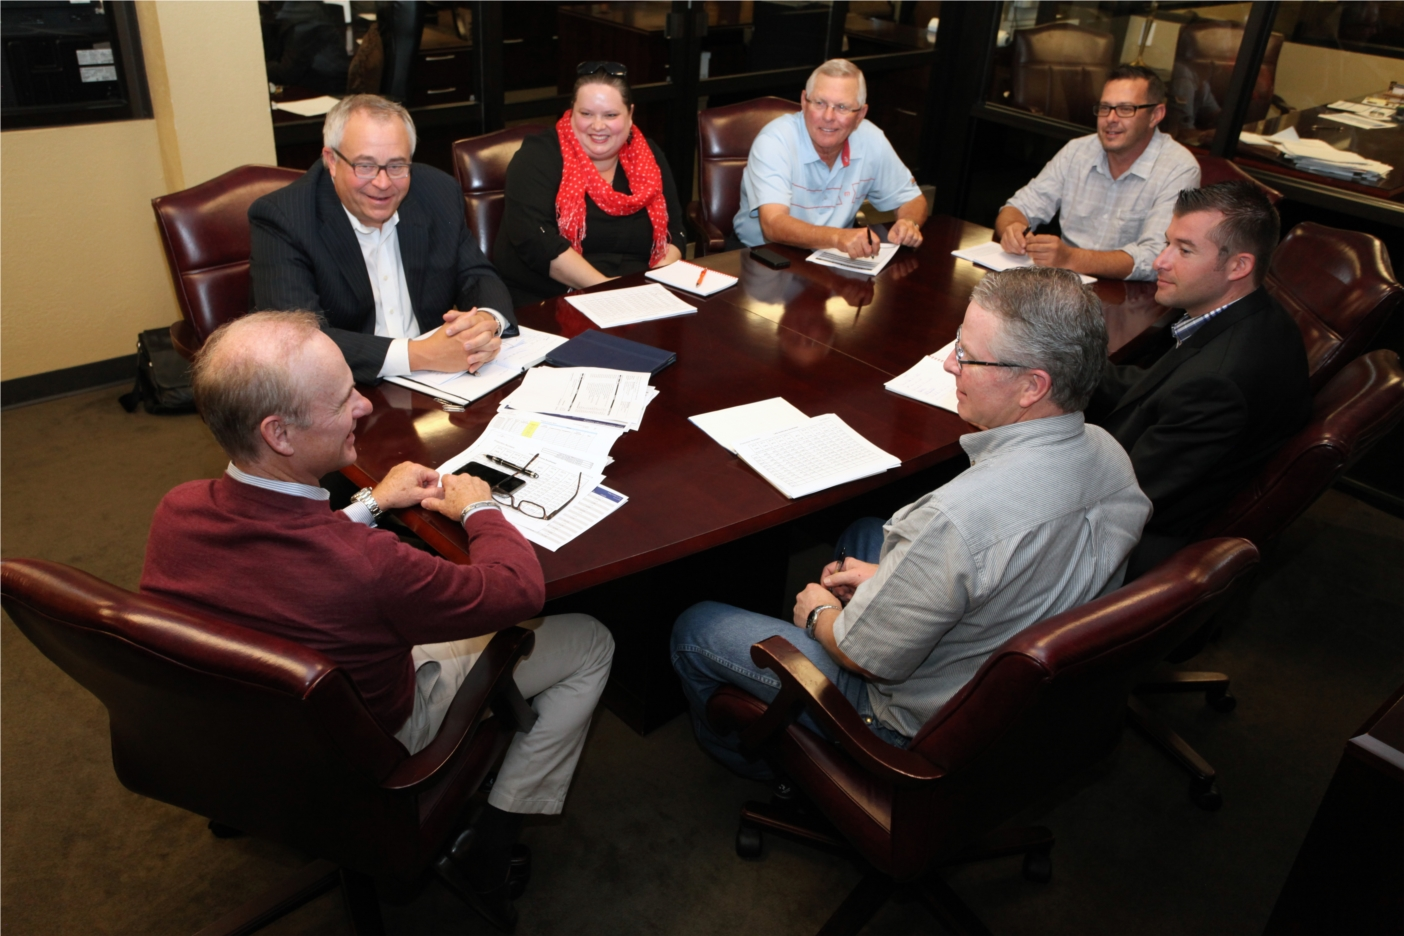 Bill Mathis, Calvin Worth and others strategize on what is best for our customers.